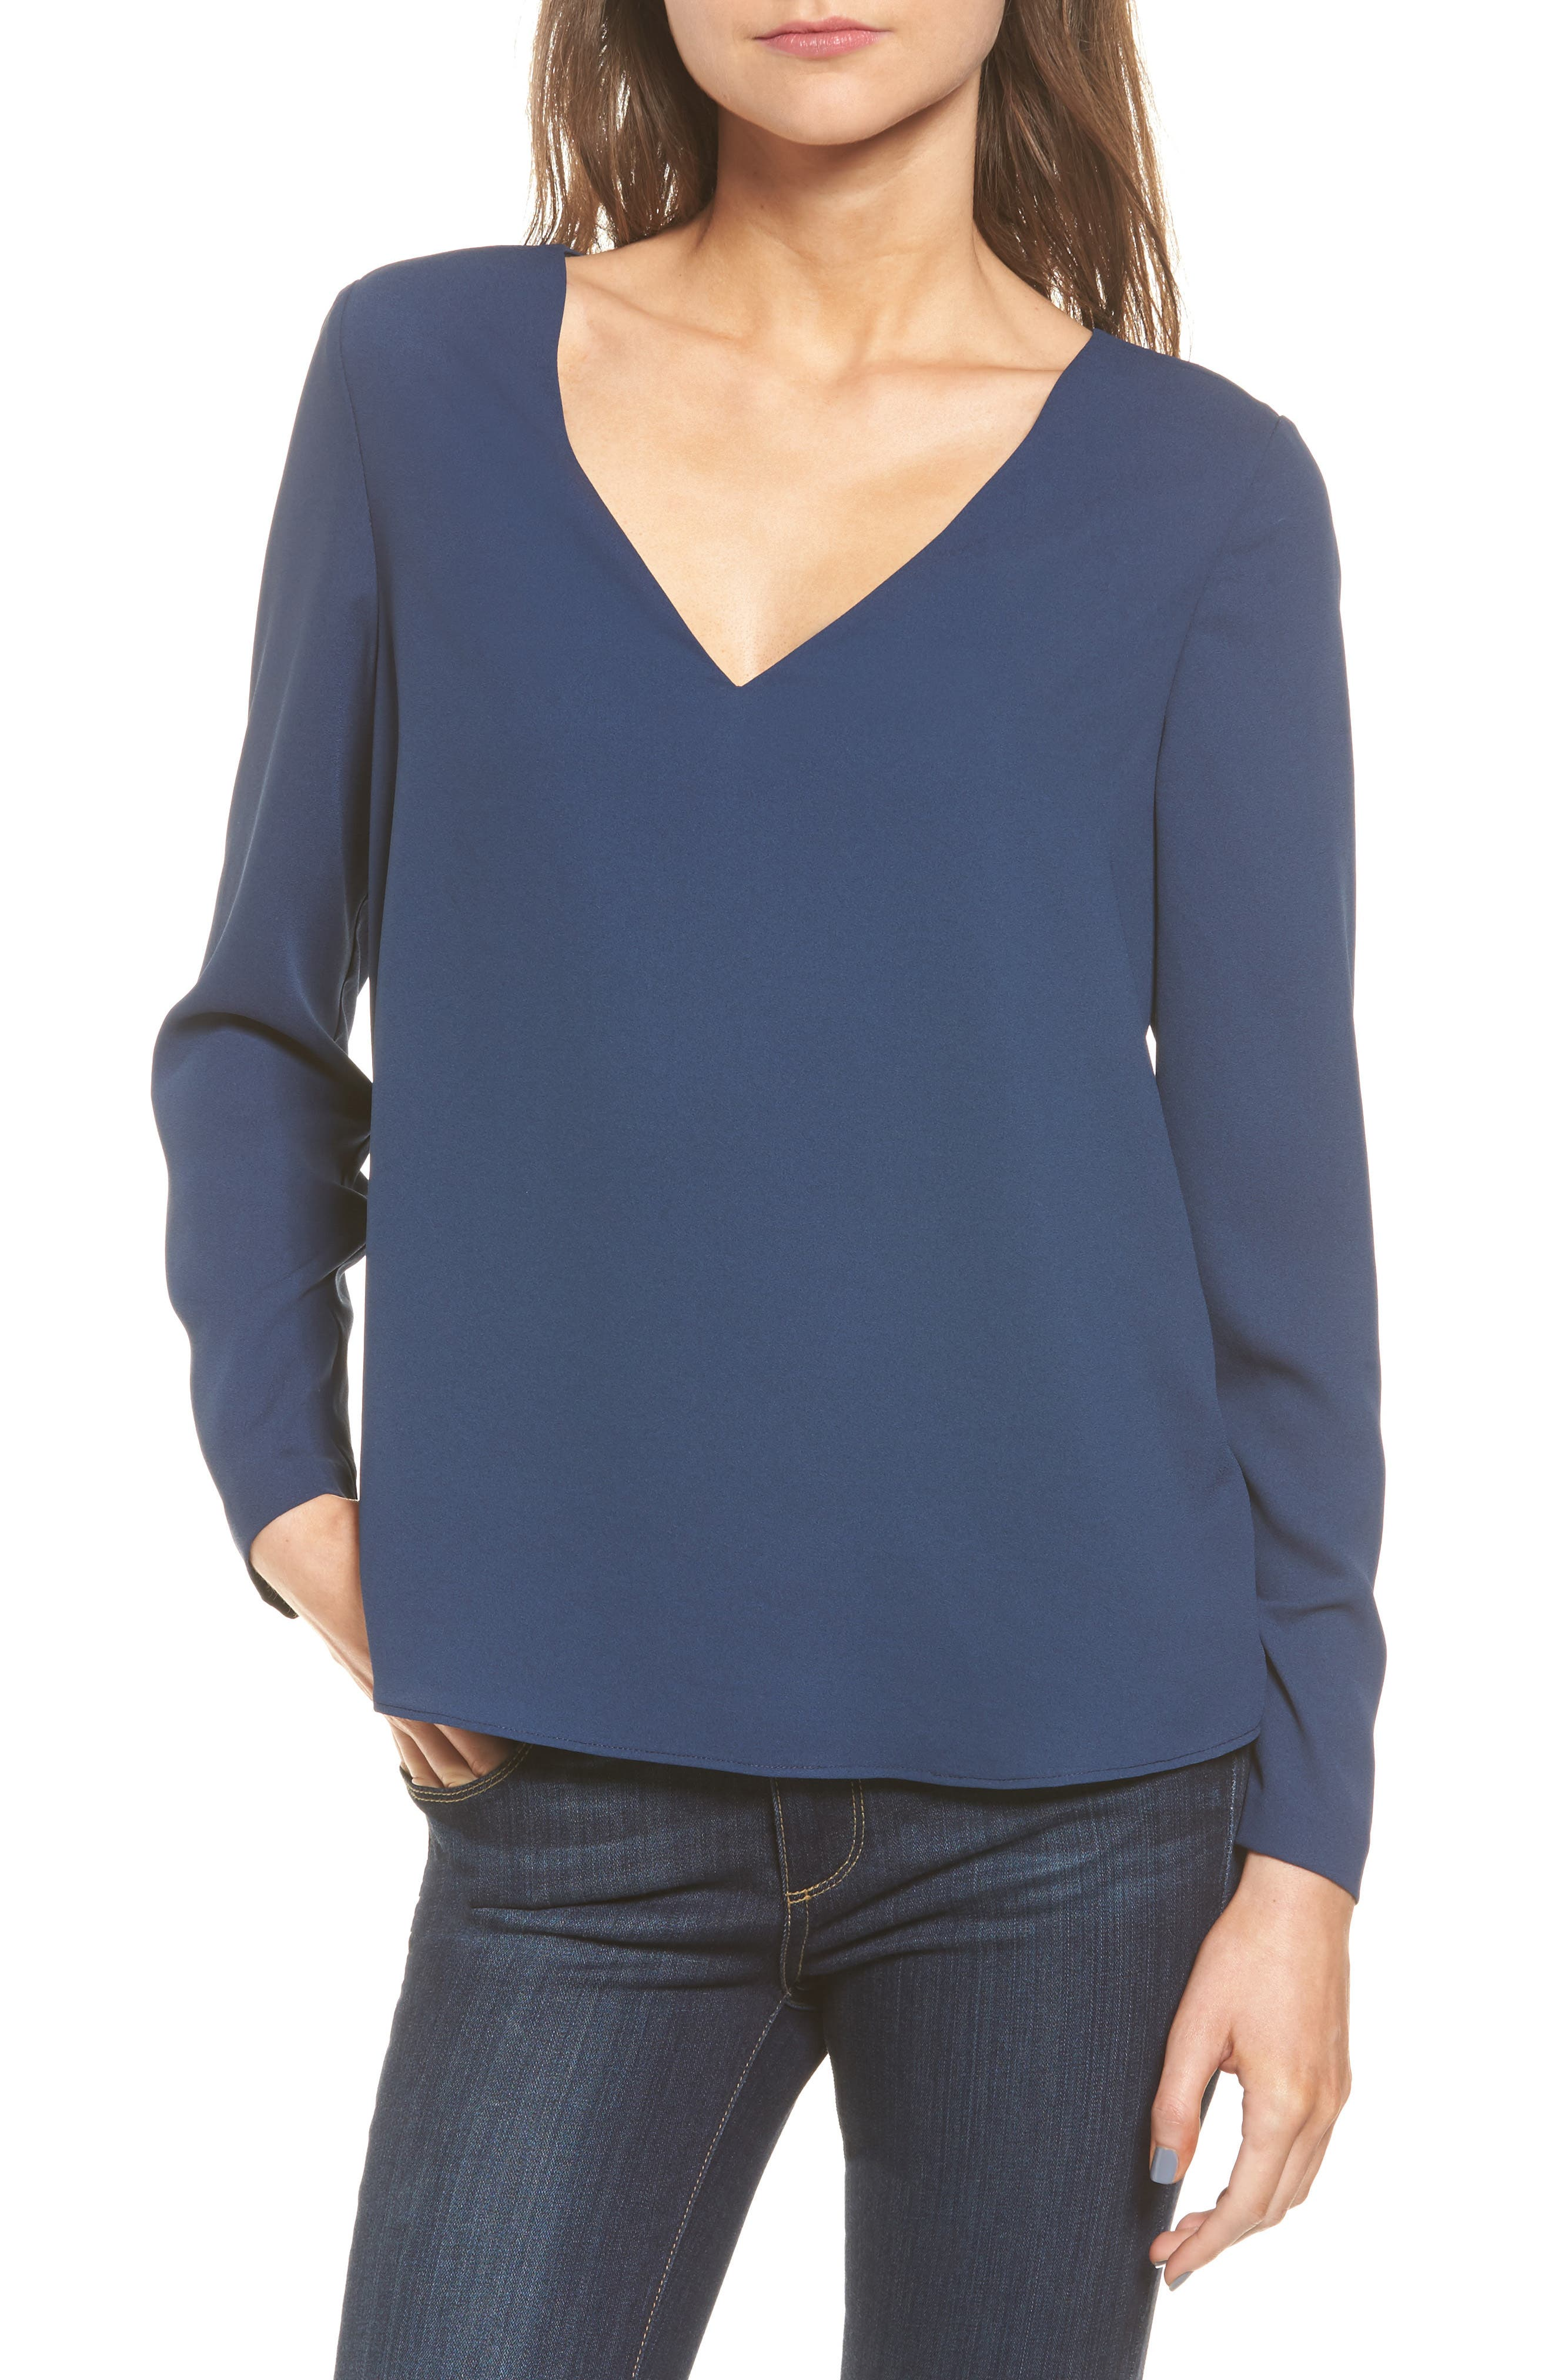 cooper & ella Freja Long Sleeve Blouse